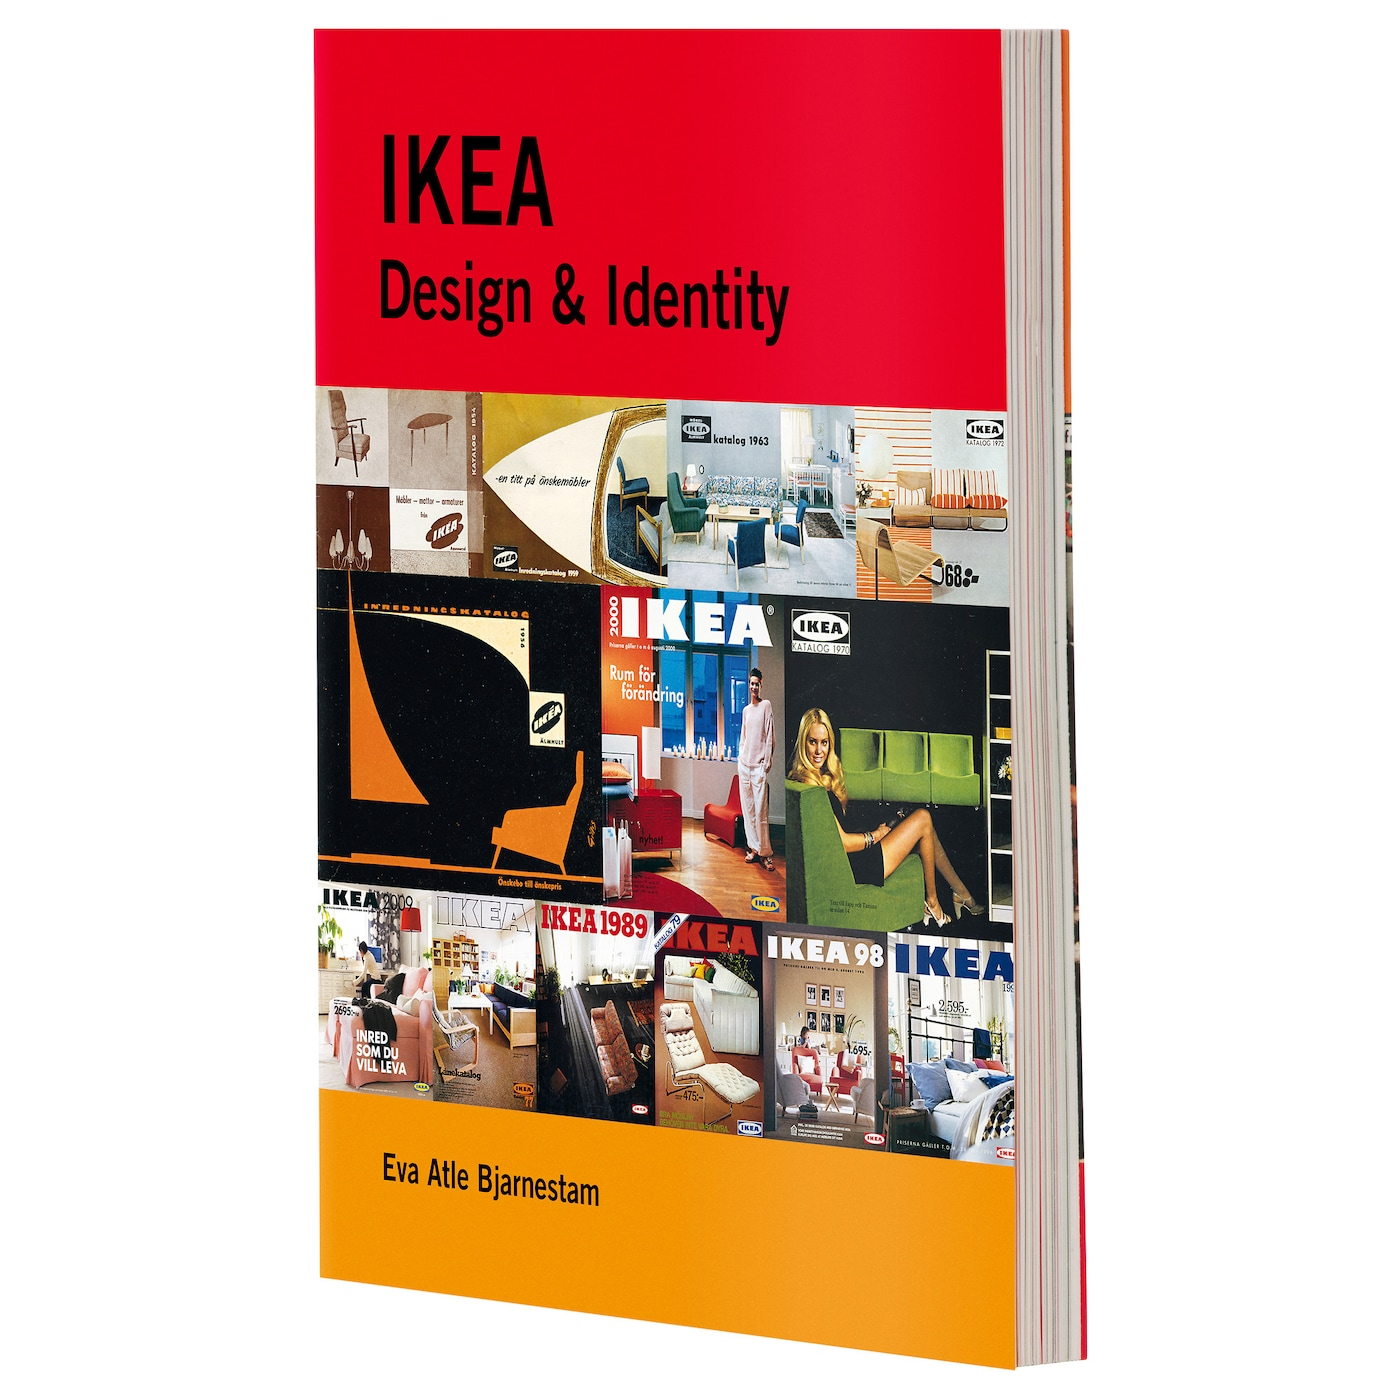 IKEA IKEA - DESIGN AND IDENTITY book